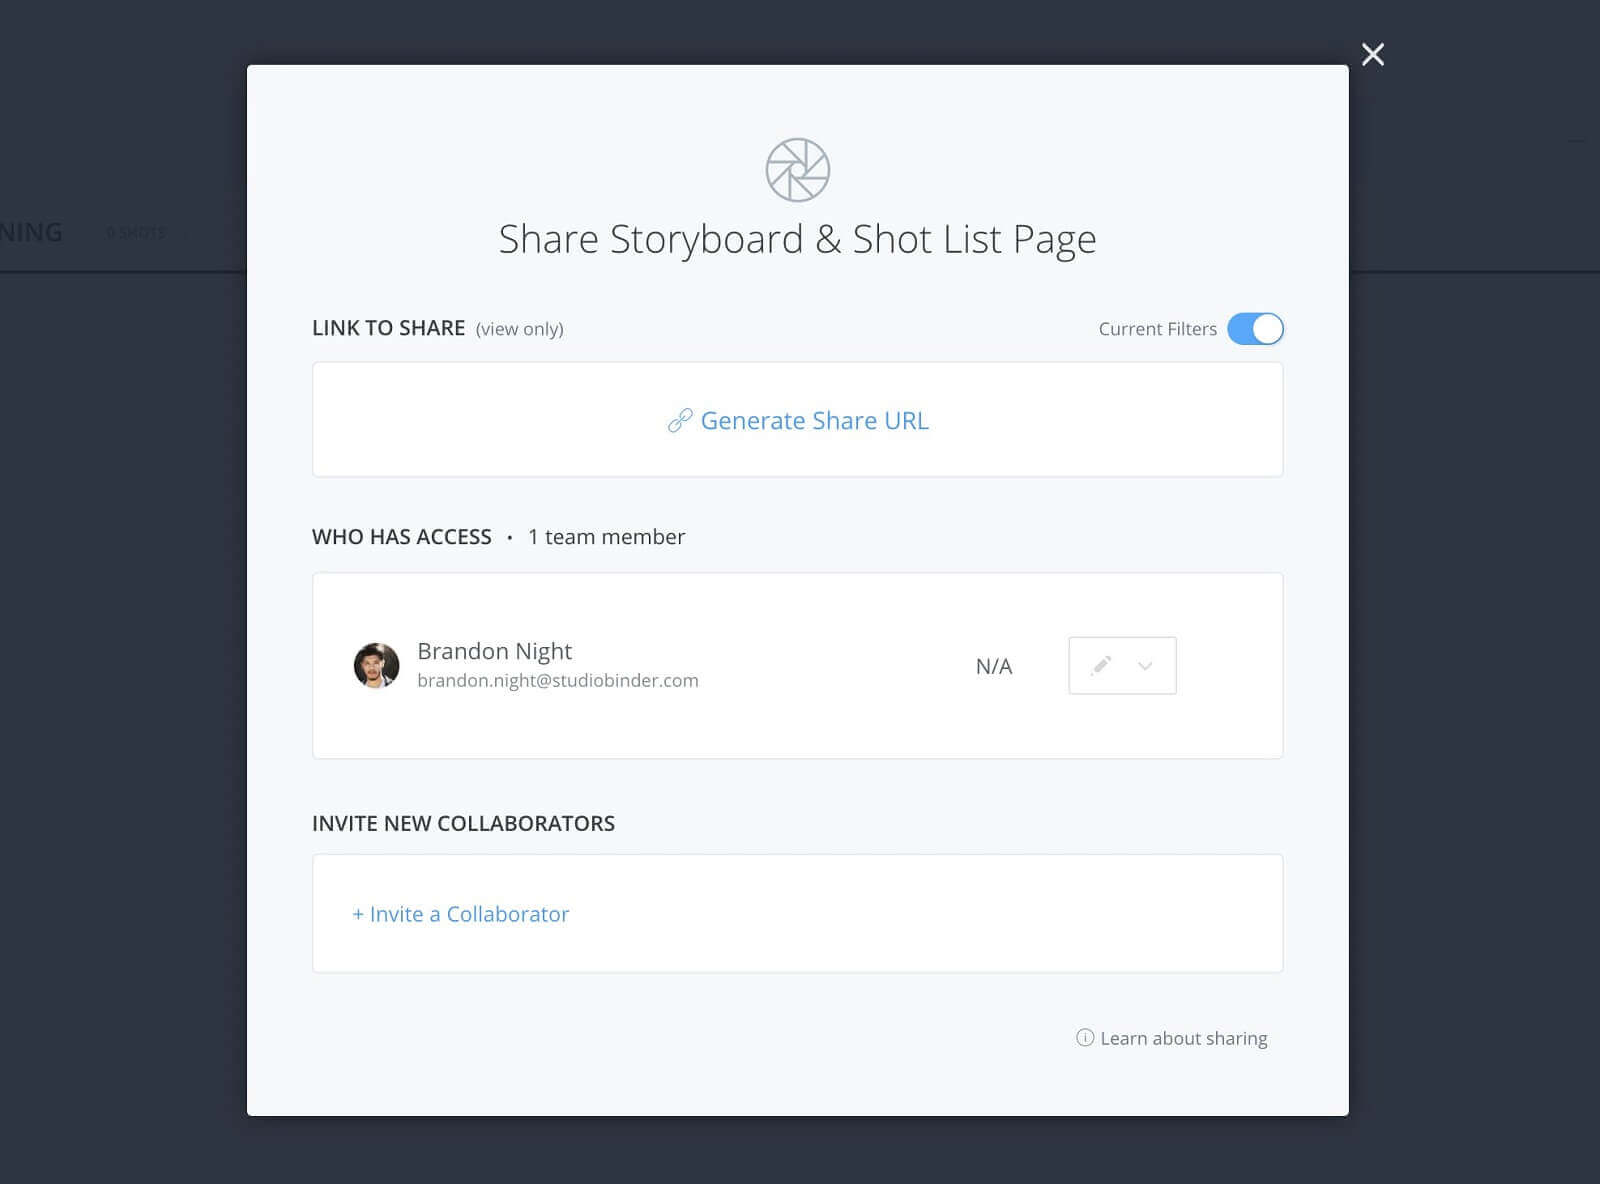 Shot lists & storyboards share page - Click invite collaborator